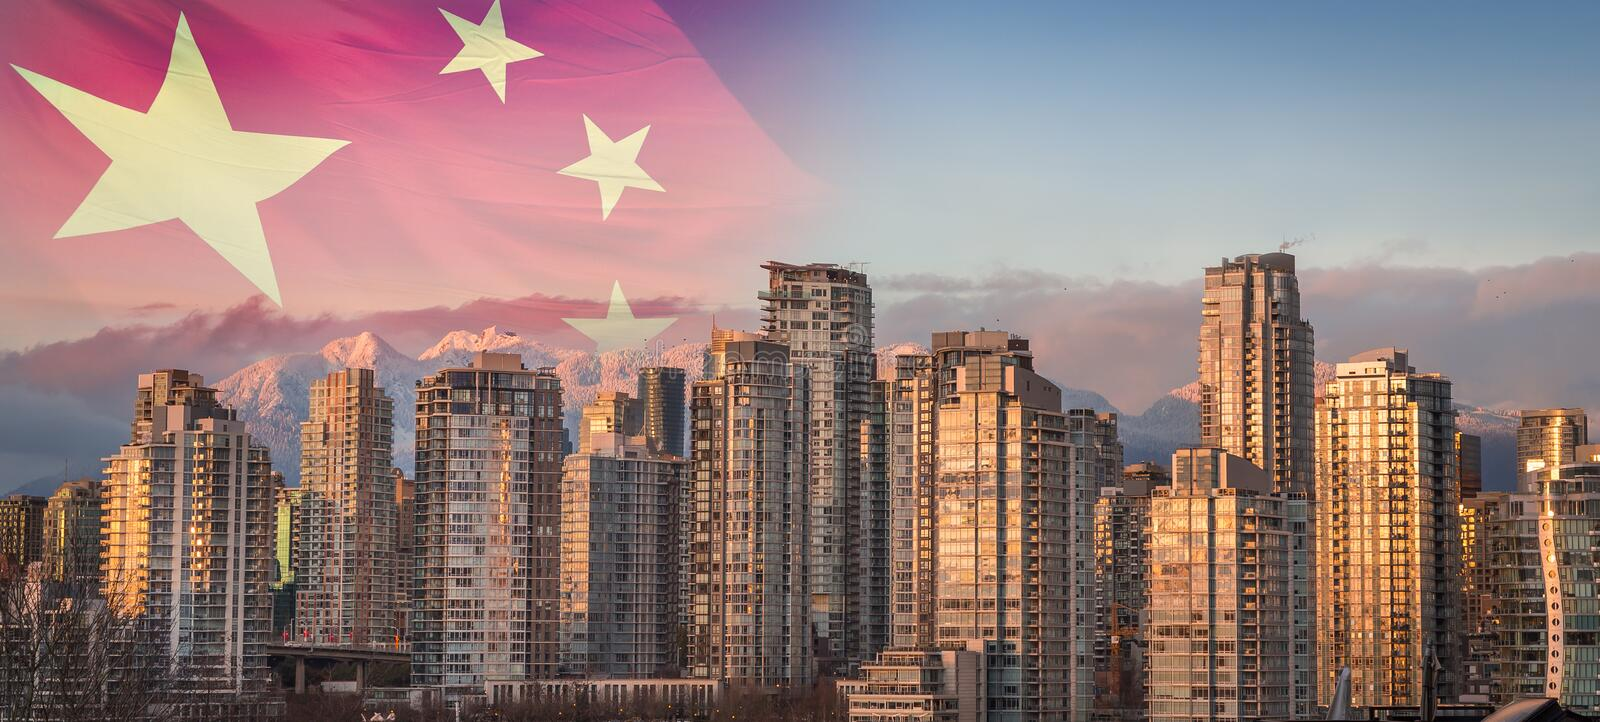 A Chinese flag superimposed over a sunset view of downtown Vancouver, BC, with a view of the snowy mountains in the royalty free stock photo